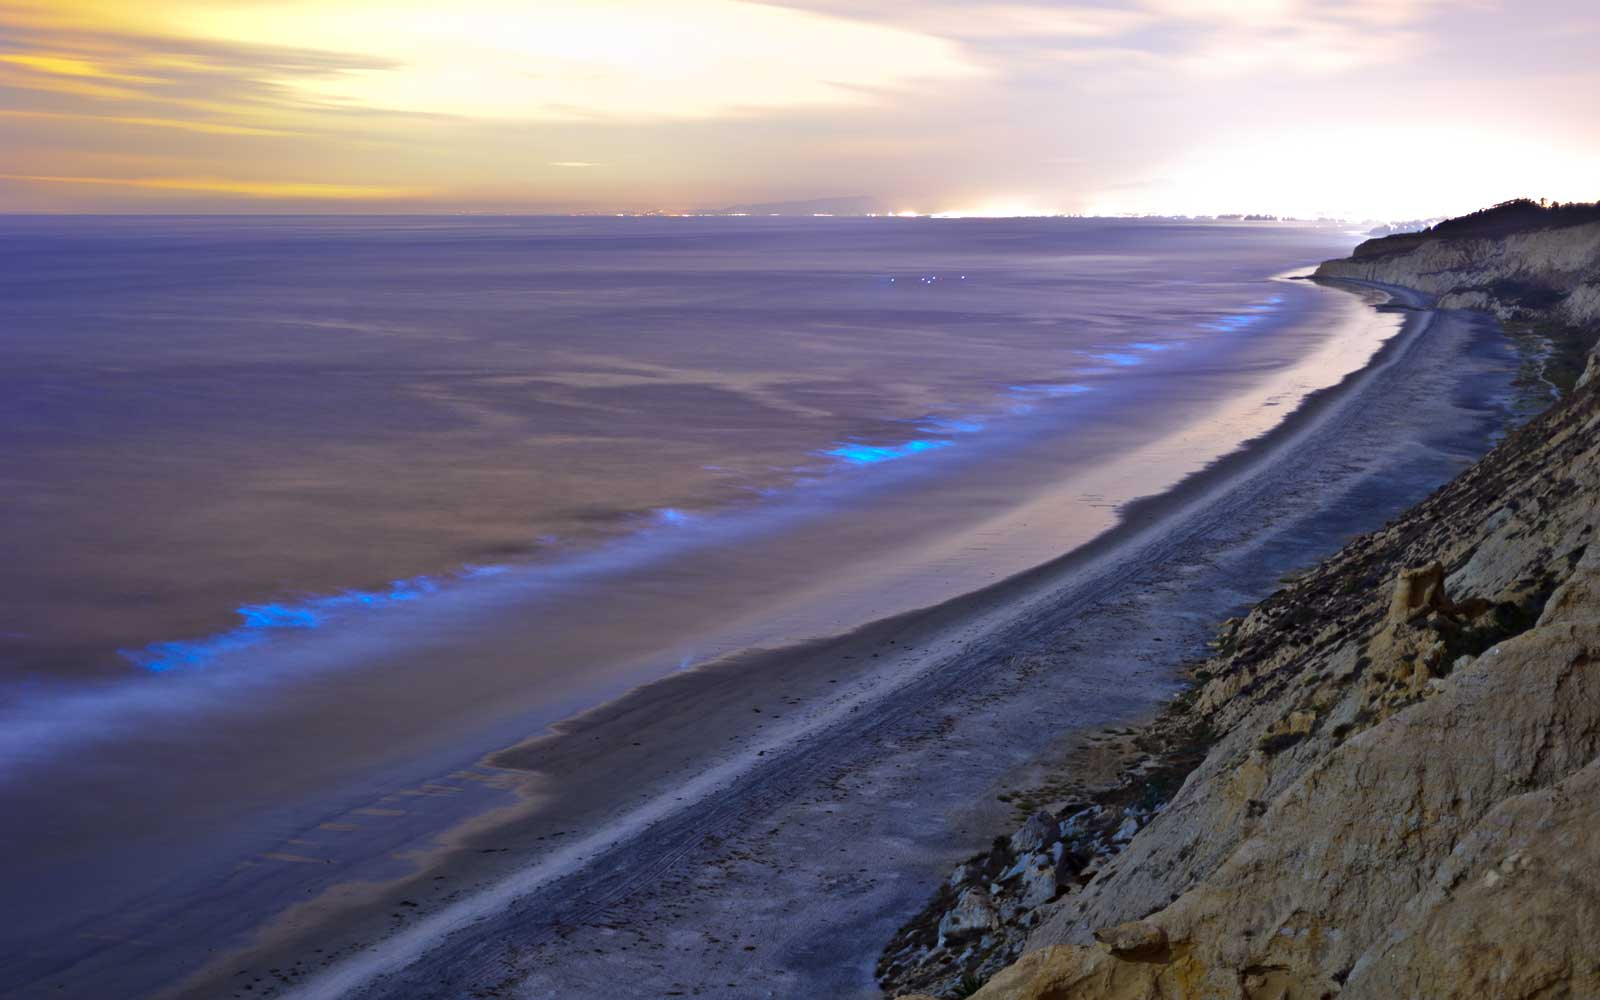 San Diego Shores Light Up With Bright Blue Bioluminescence